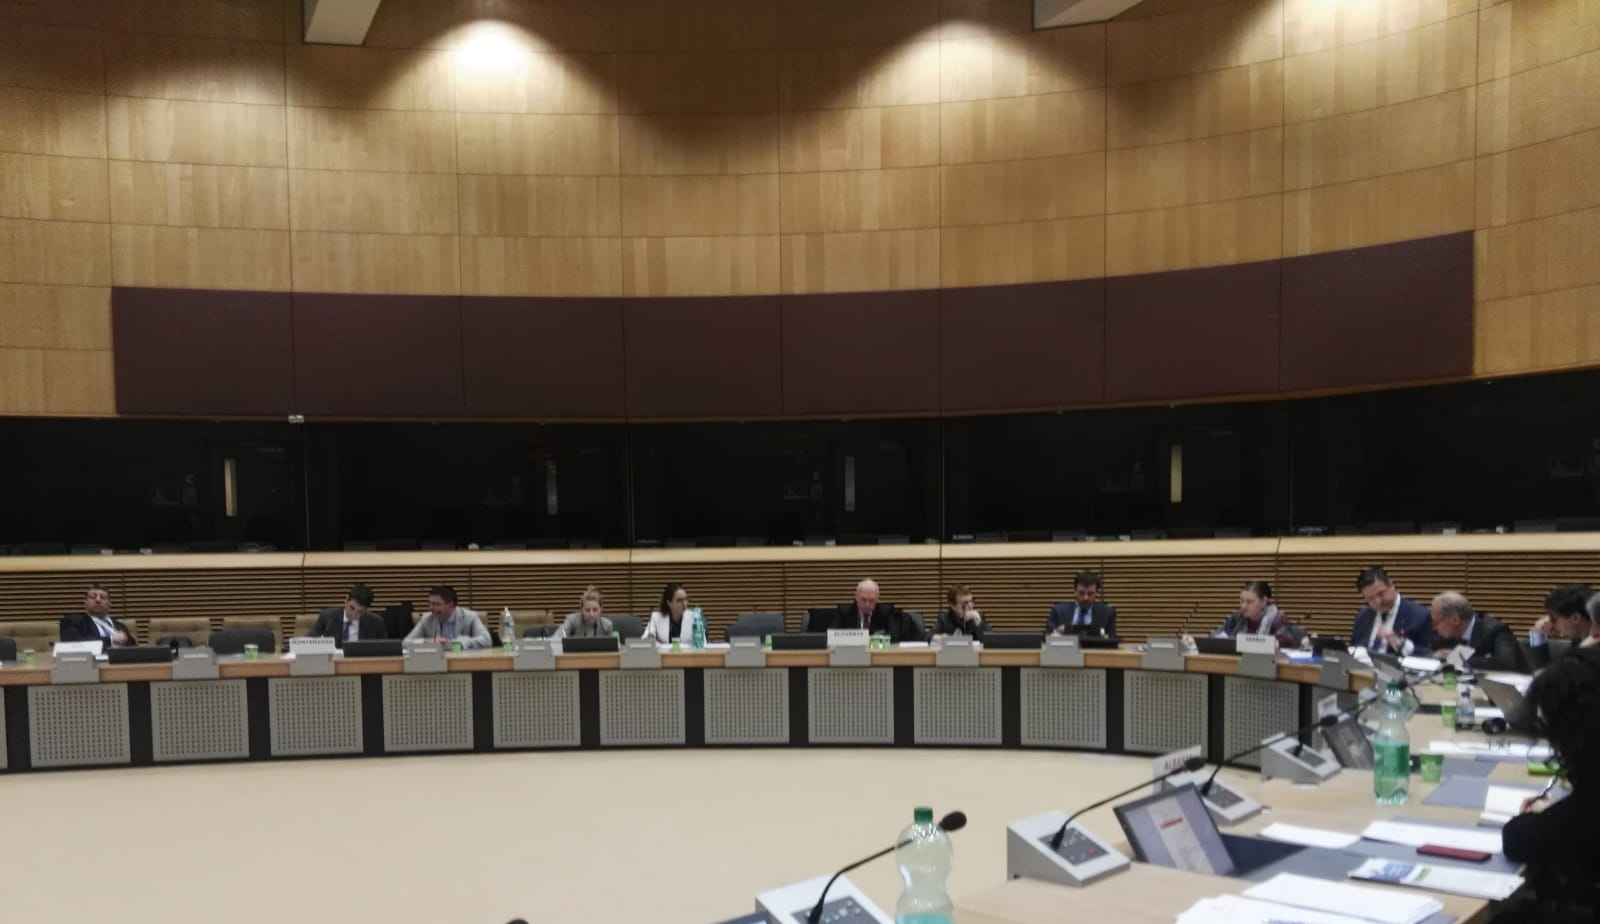 II AII COMMITTEE OF SENIOR OFFICIALS AND 11TH EUSAIR GOVERNING BOARD HELD IN BRUSSELS - 18 FEBRUARY 2020